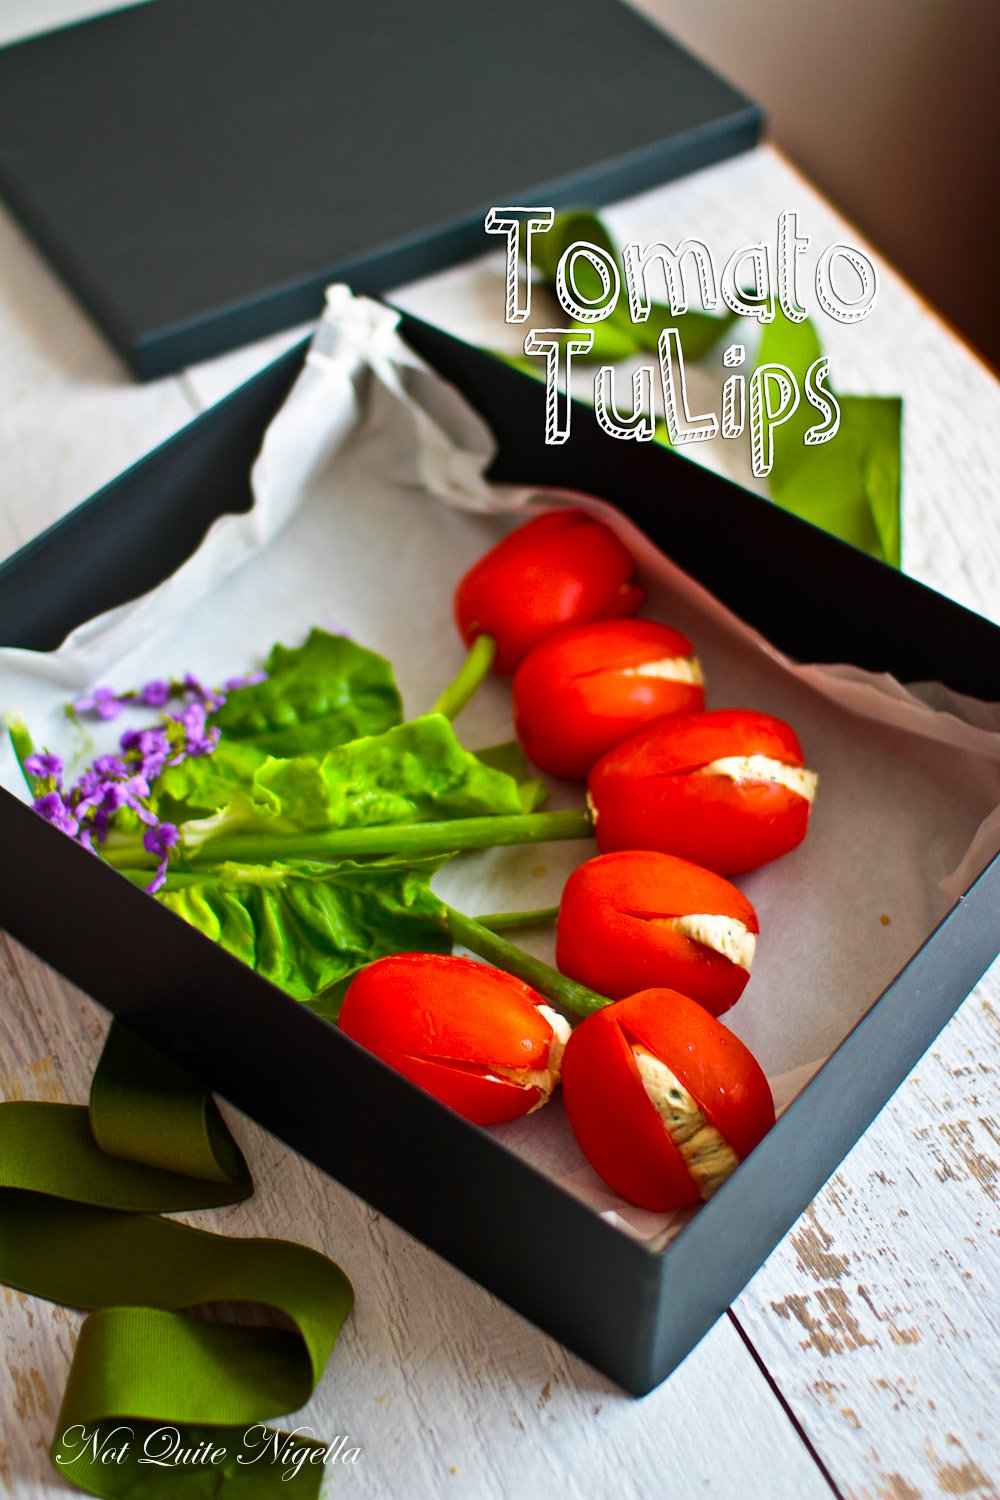 Mother's Day Surprise - Tomato Tulips!